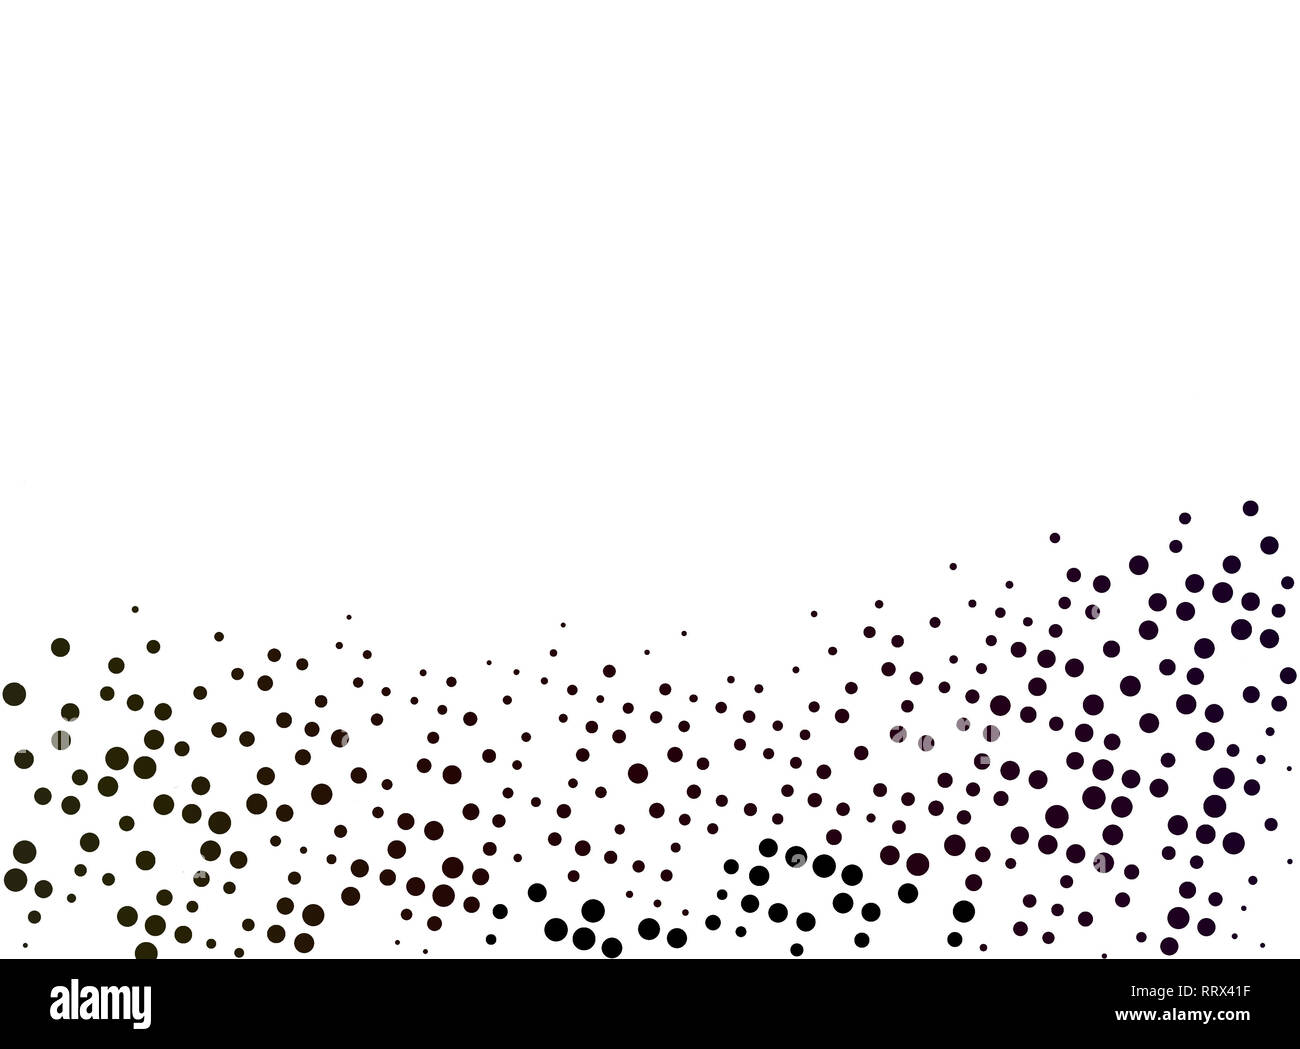 Black abstract dotted background with copy space and clipping path. Creative halftone pattern, design template and illustration on white background. - Stock Image